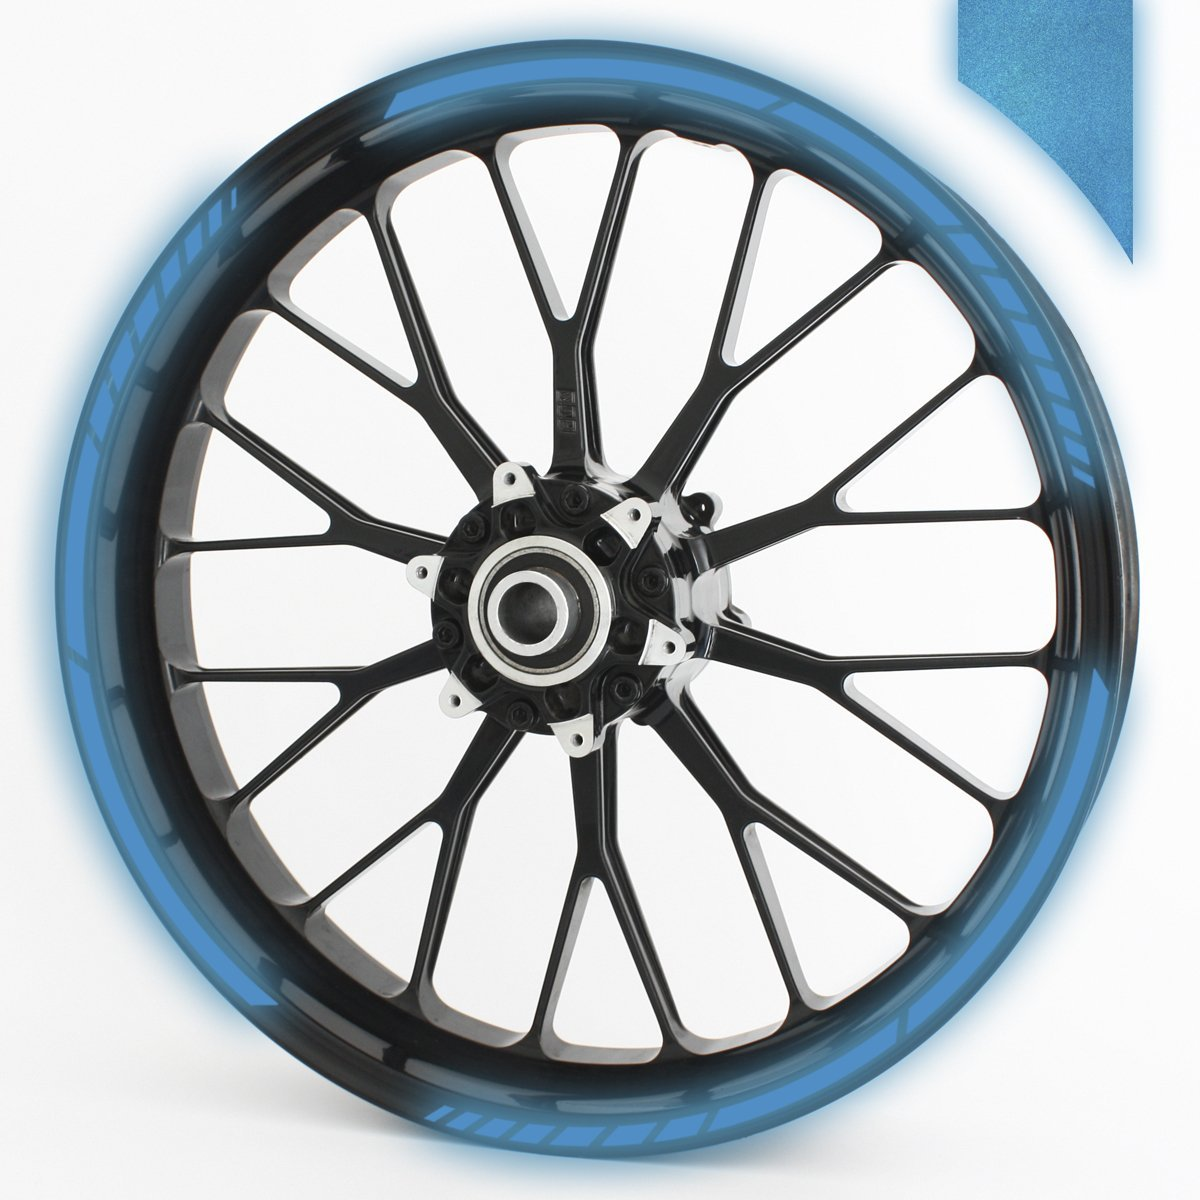 Wandkings GP wheel rim sticker for 15', 16', 17', 18' and 19' Motorcycle & Car Wheels - colour selectable - black reflective 16 17 18 and 19 Motorcycle & Car Wheels - colour selectable - black reflective